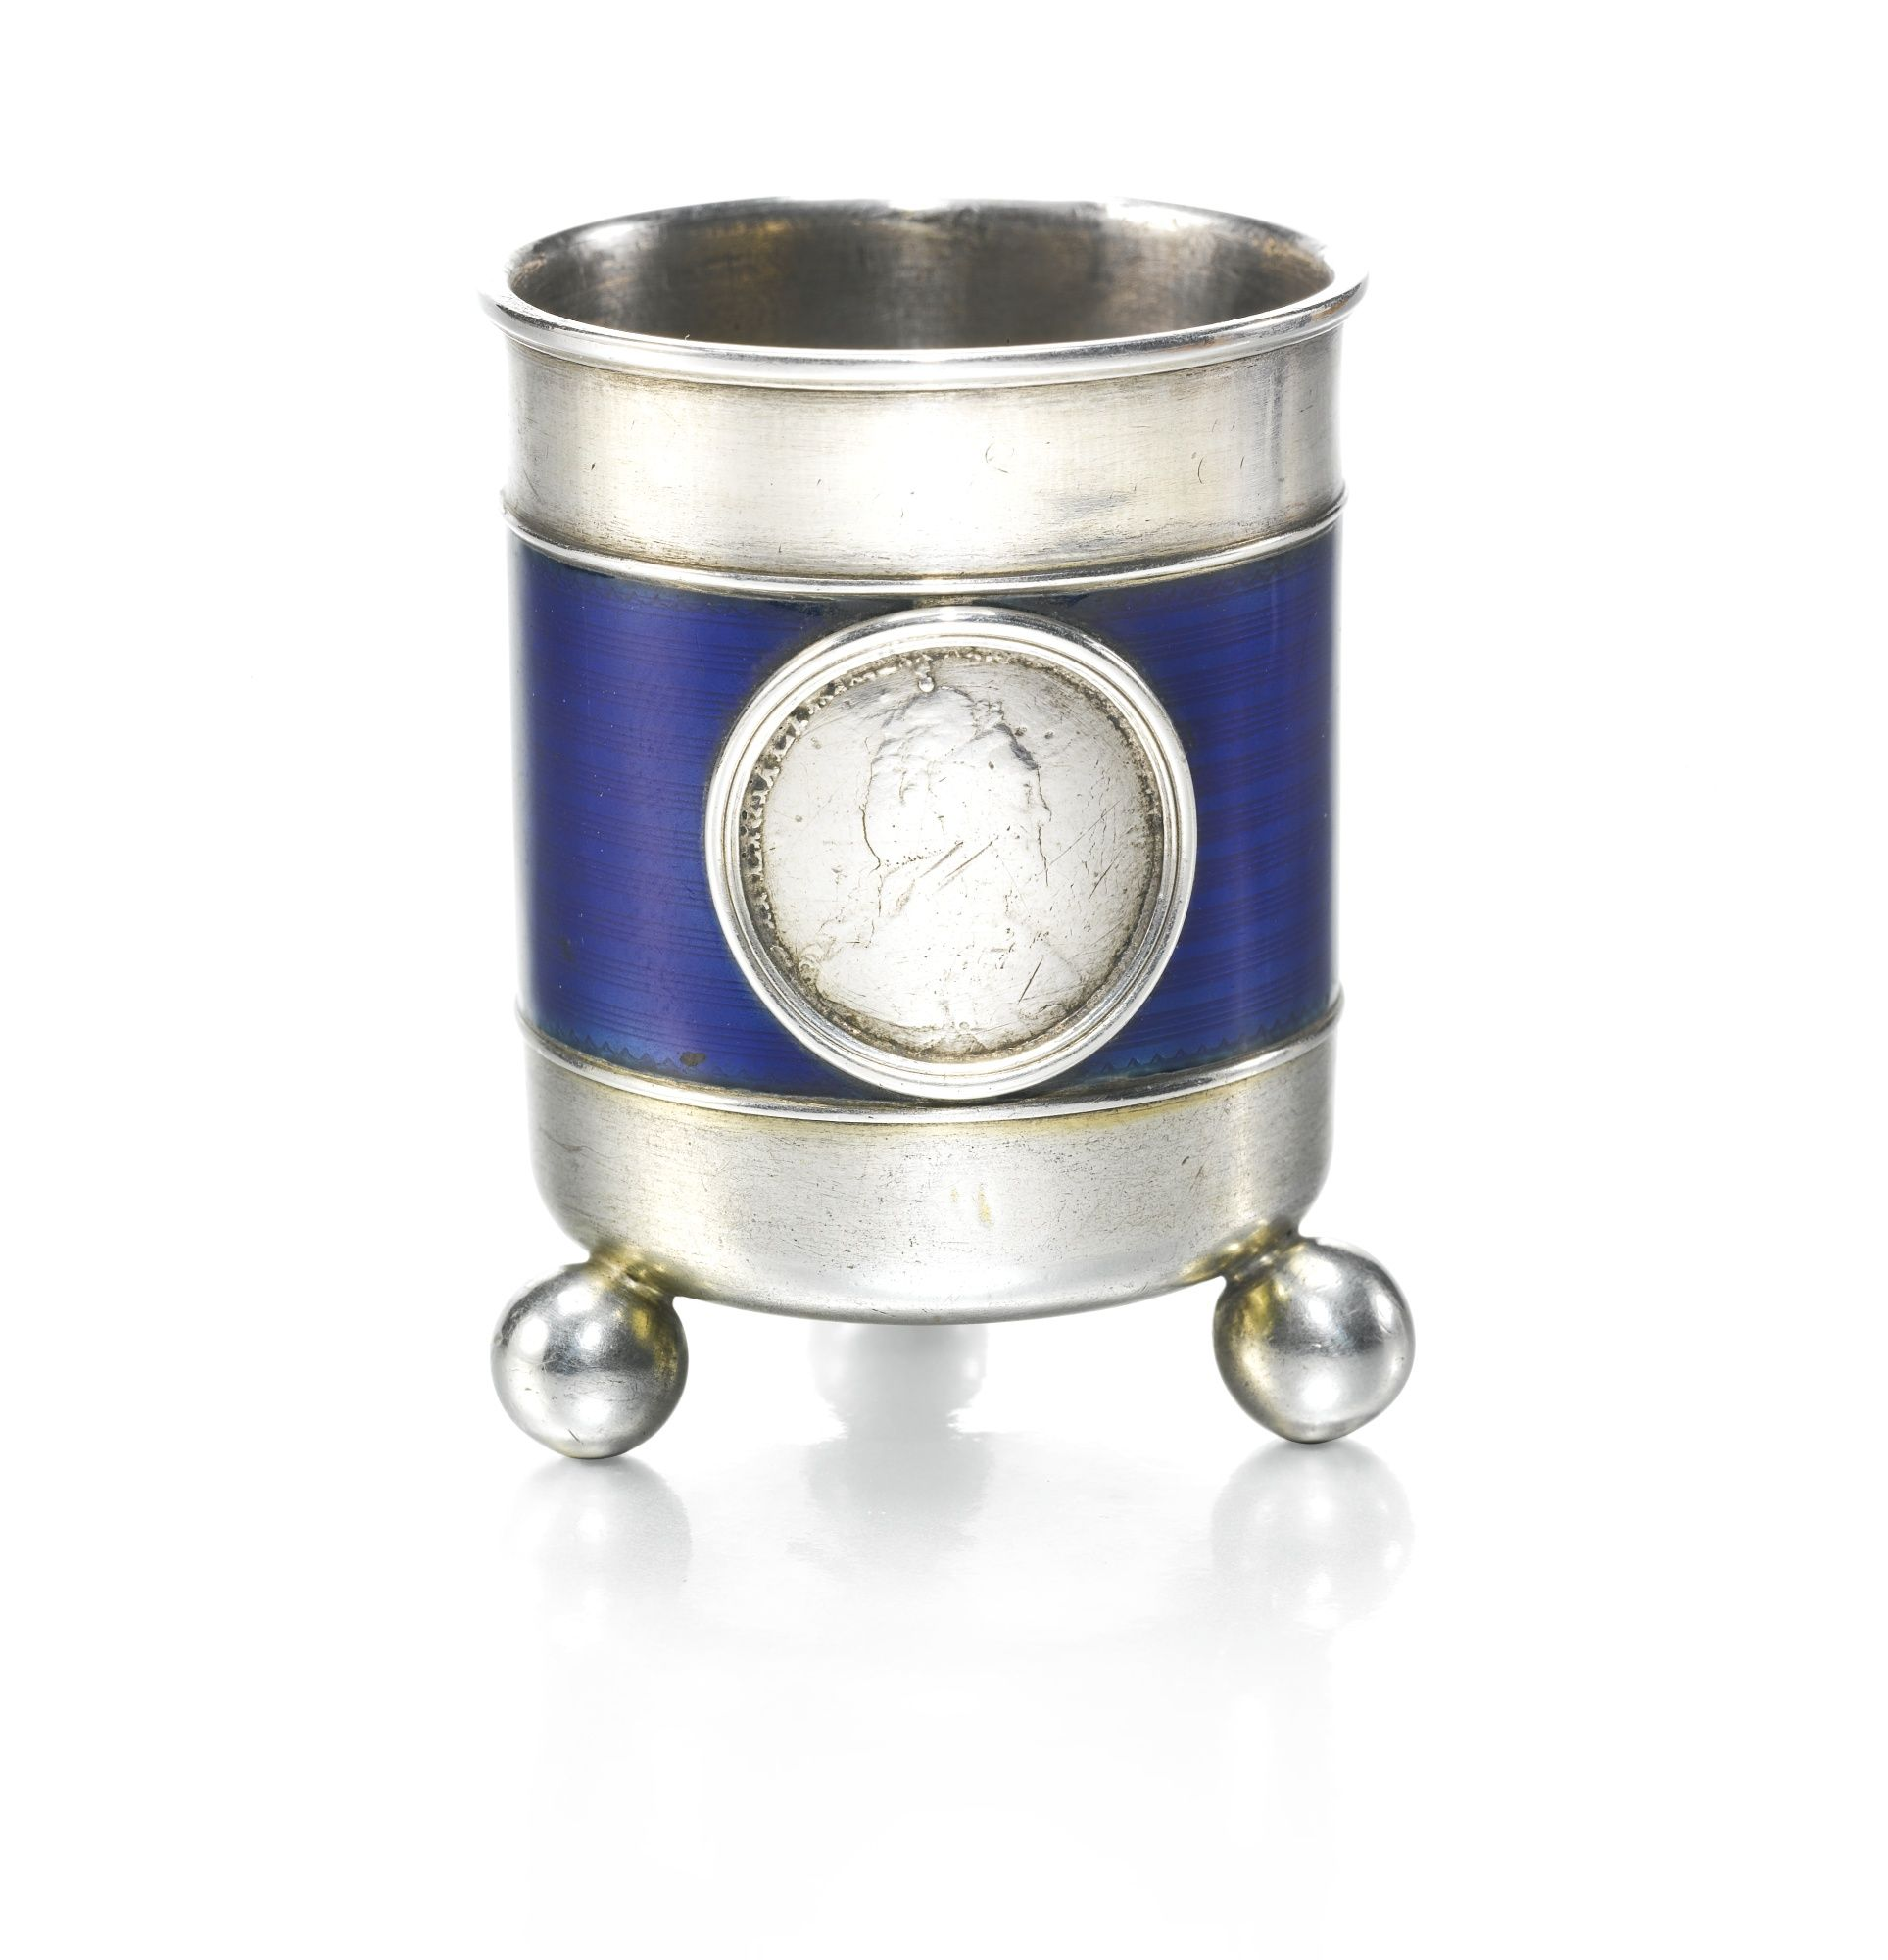 AFabergé silver and enamel vodka beaker, workmaster Anders Nevalainen, St Petersburg, 1899-1904   Lot   Sotheby's -cylindrical, the side enamelled in a band of translucent midnight blue over engine-turned stripes, the front inset with a silver ten kopek coin of Empress Catherine II dated 1784, on three ball feet, struck with workmaster's initials and K. Fabergé in Cyrillic, 88 standard, scratched inventory number 10016 height 4.7cm, 1 7/8 in.